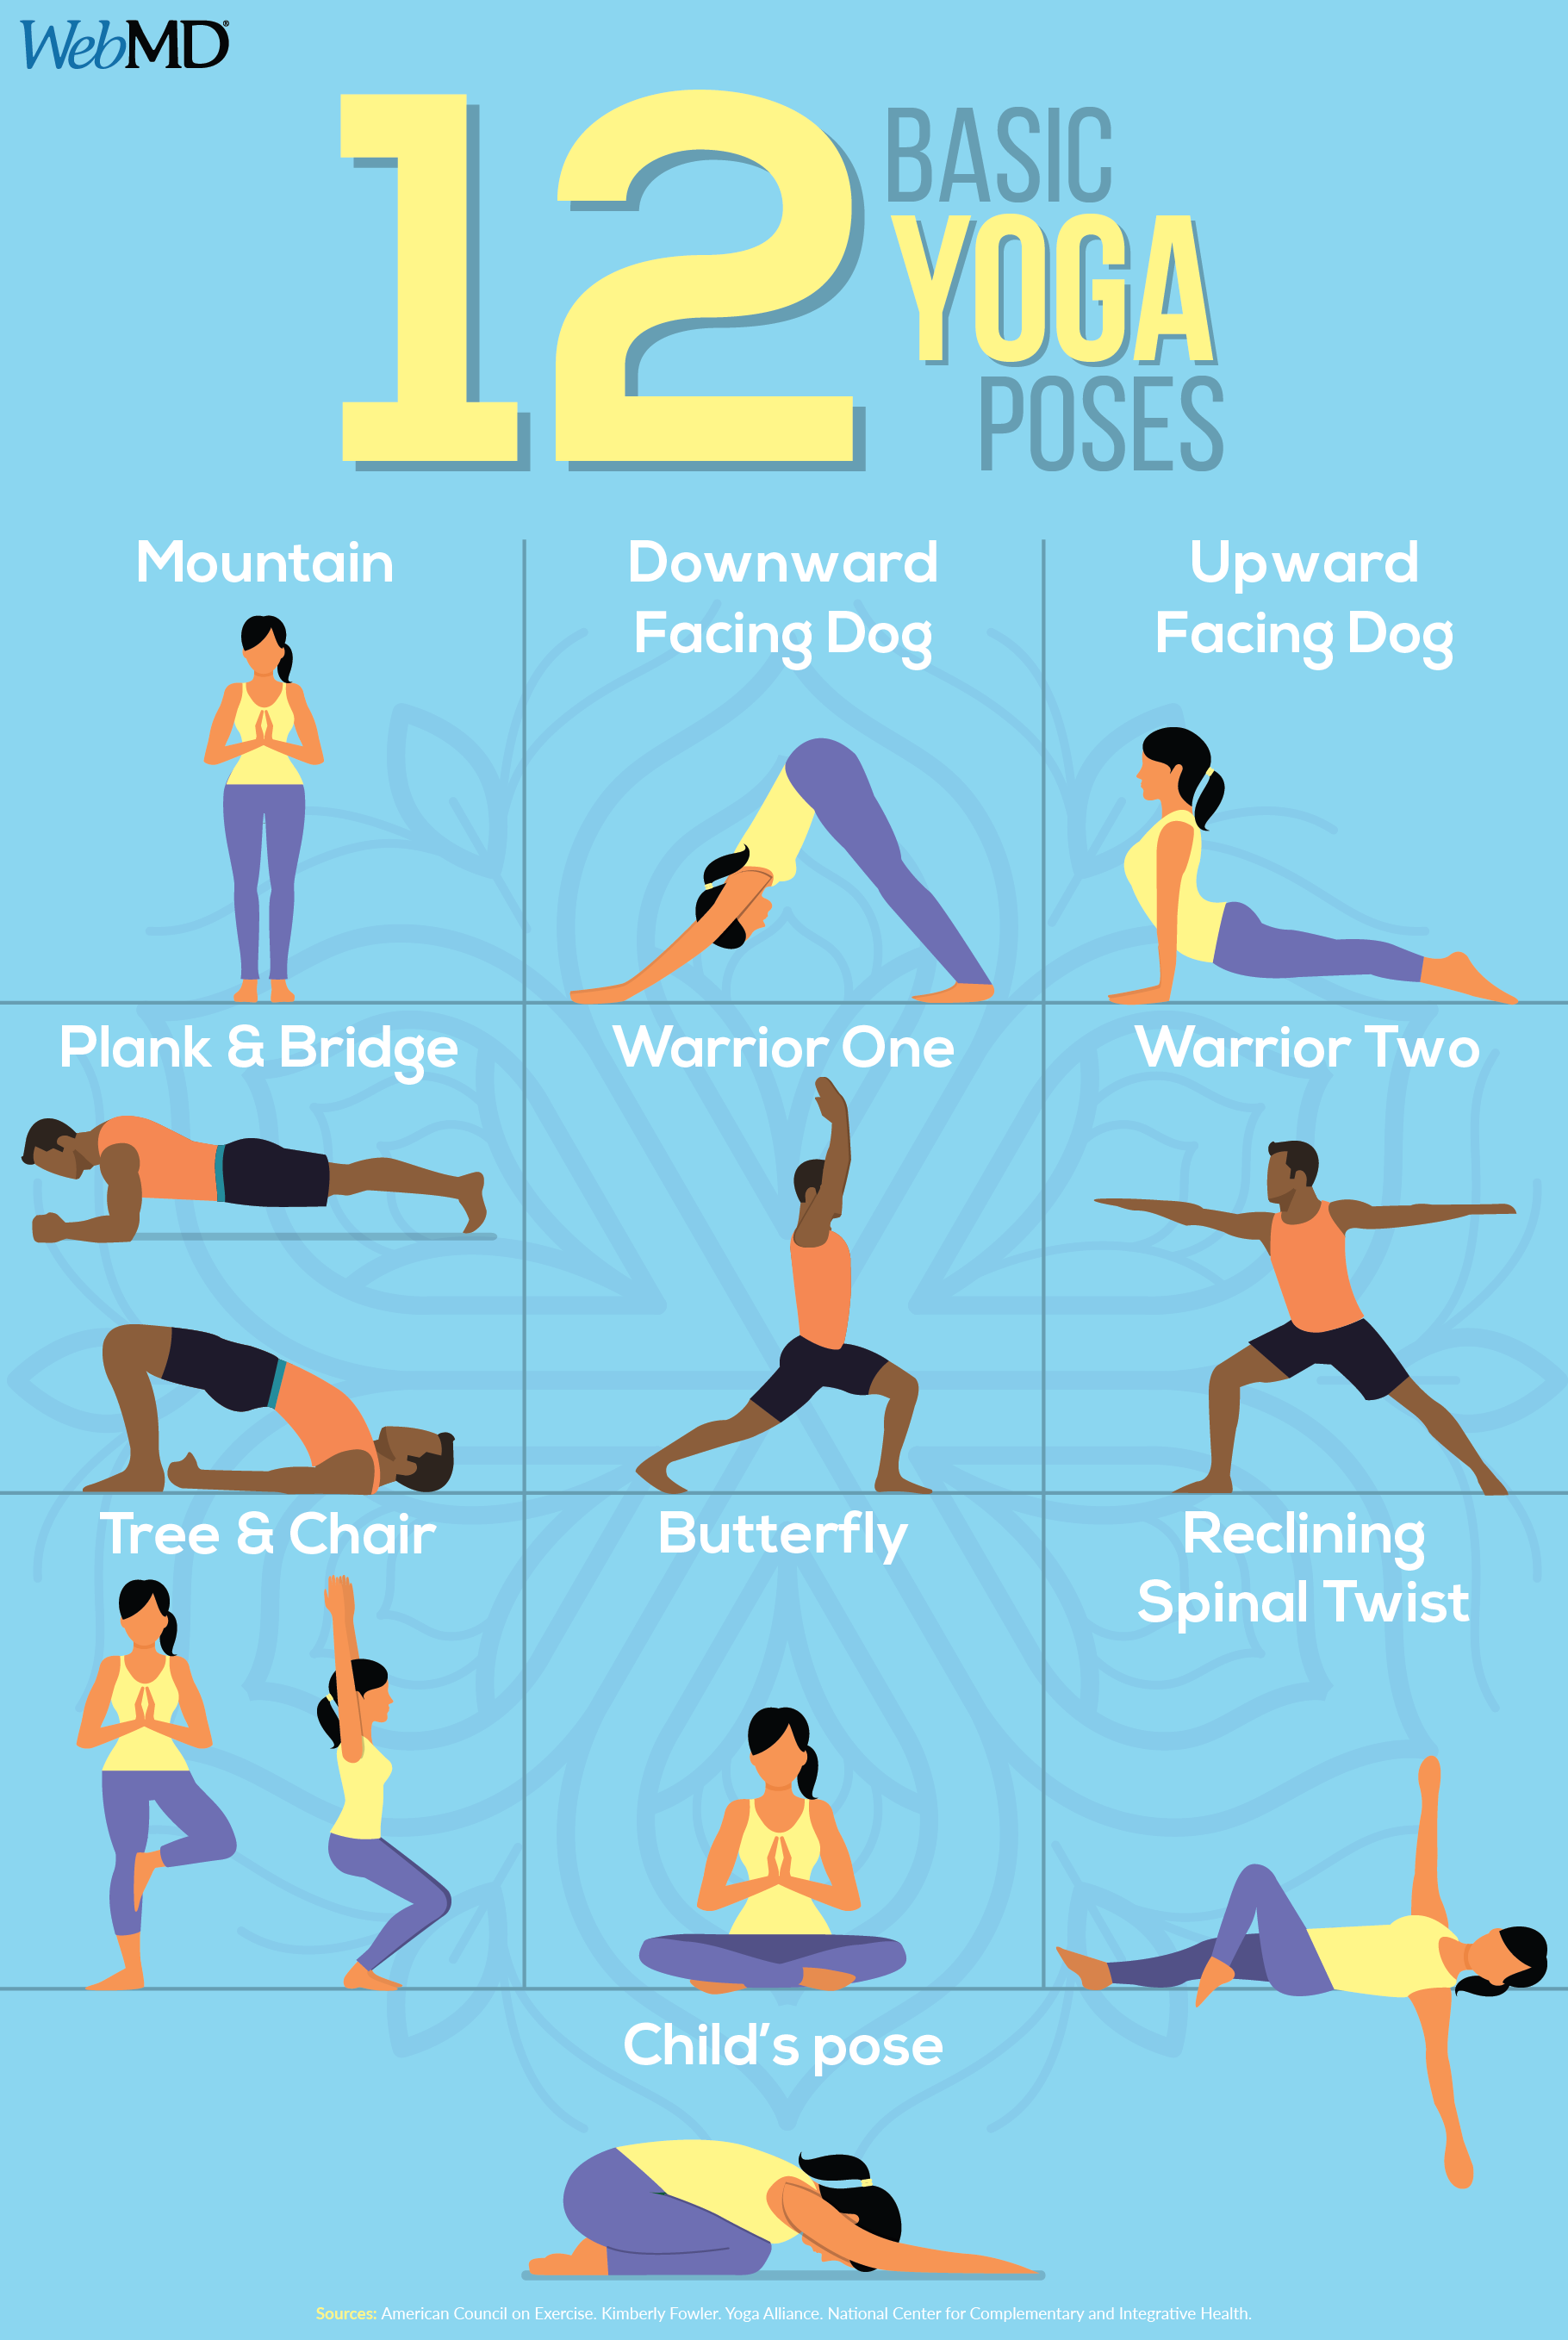 Slideshow: 40 Basic Yoga Poses  Basic yoga poses, Basic yoga